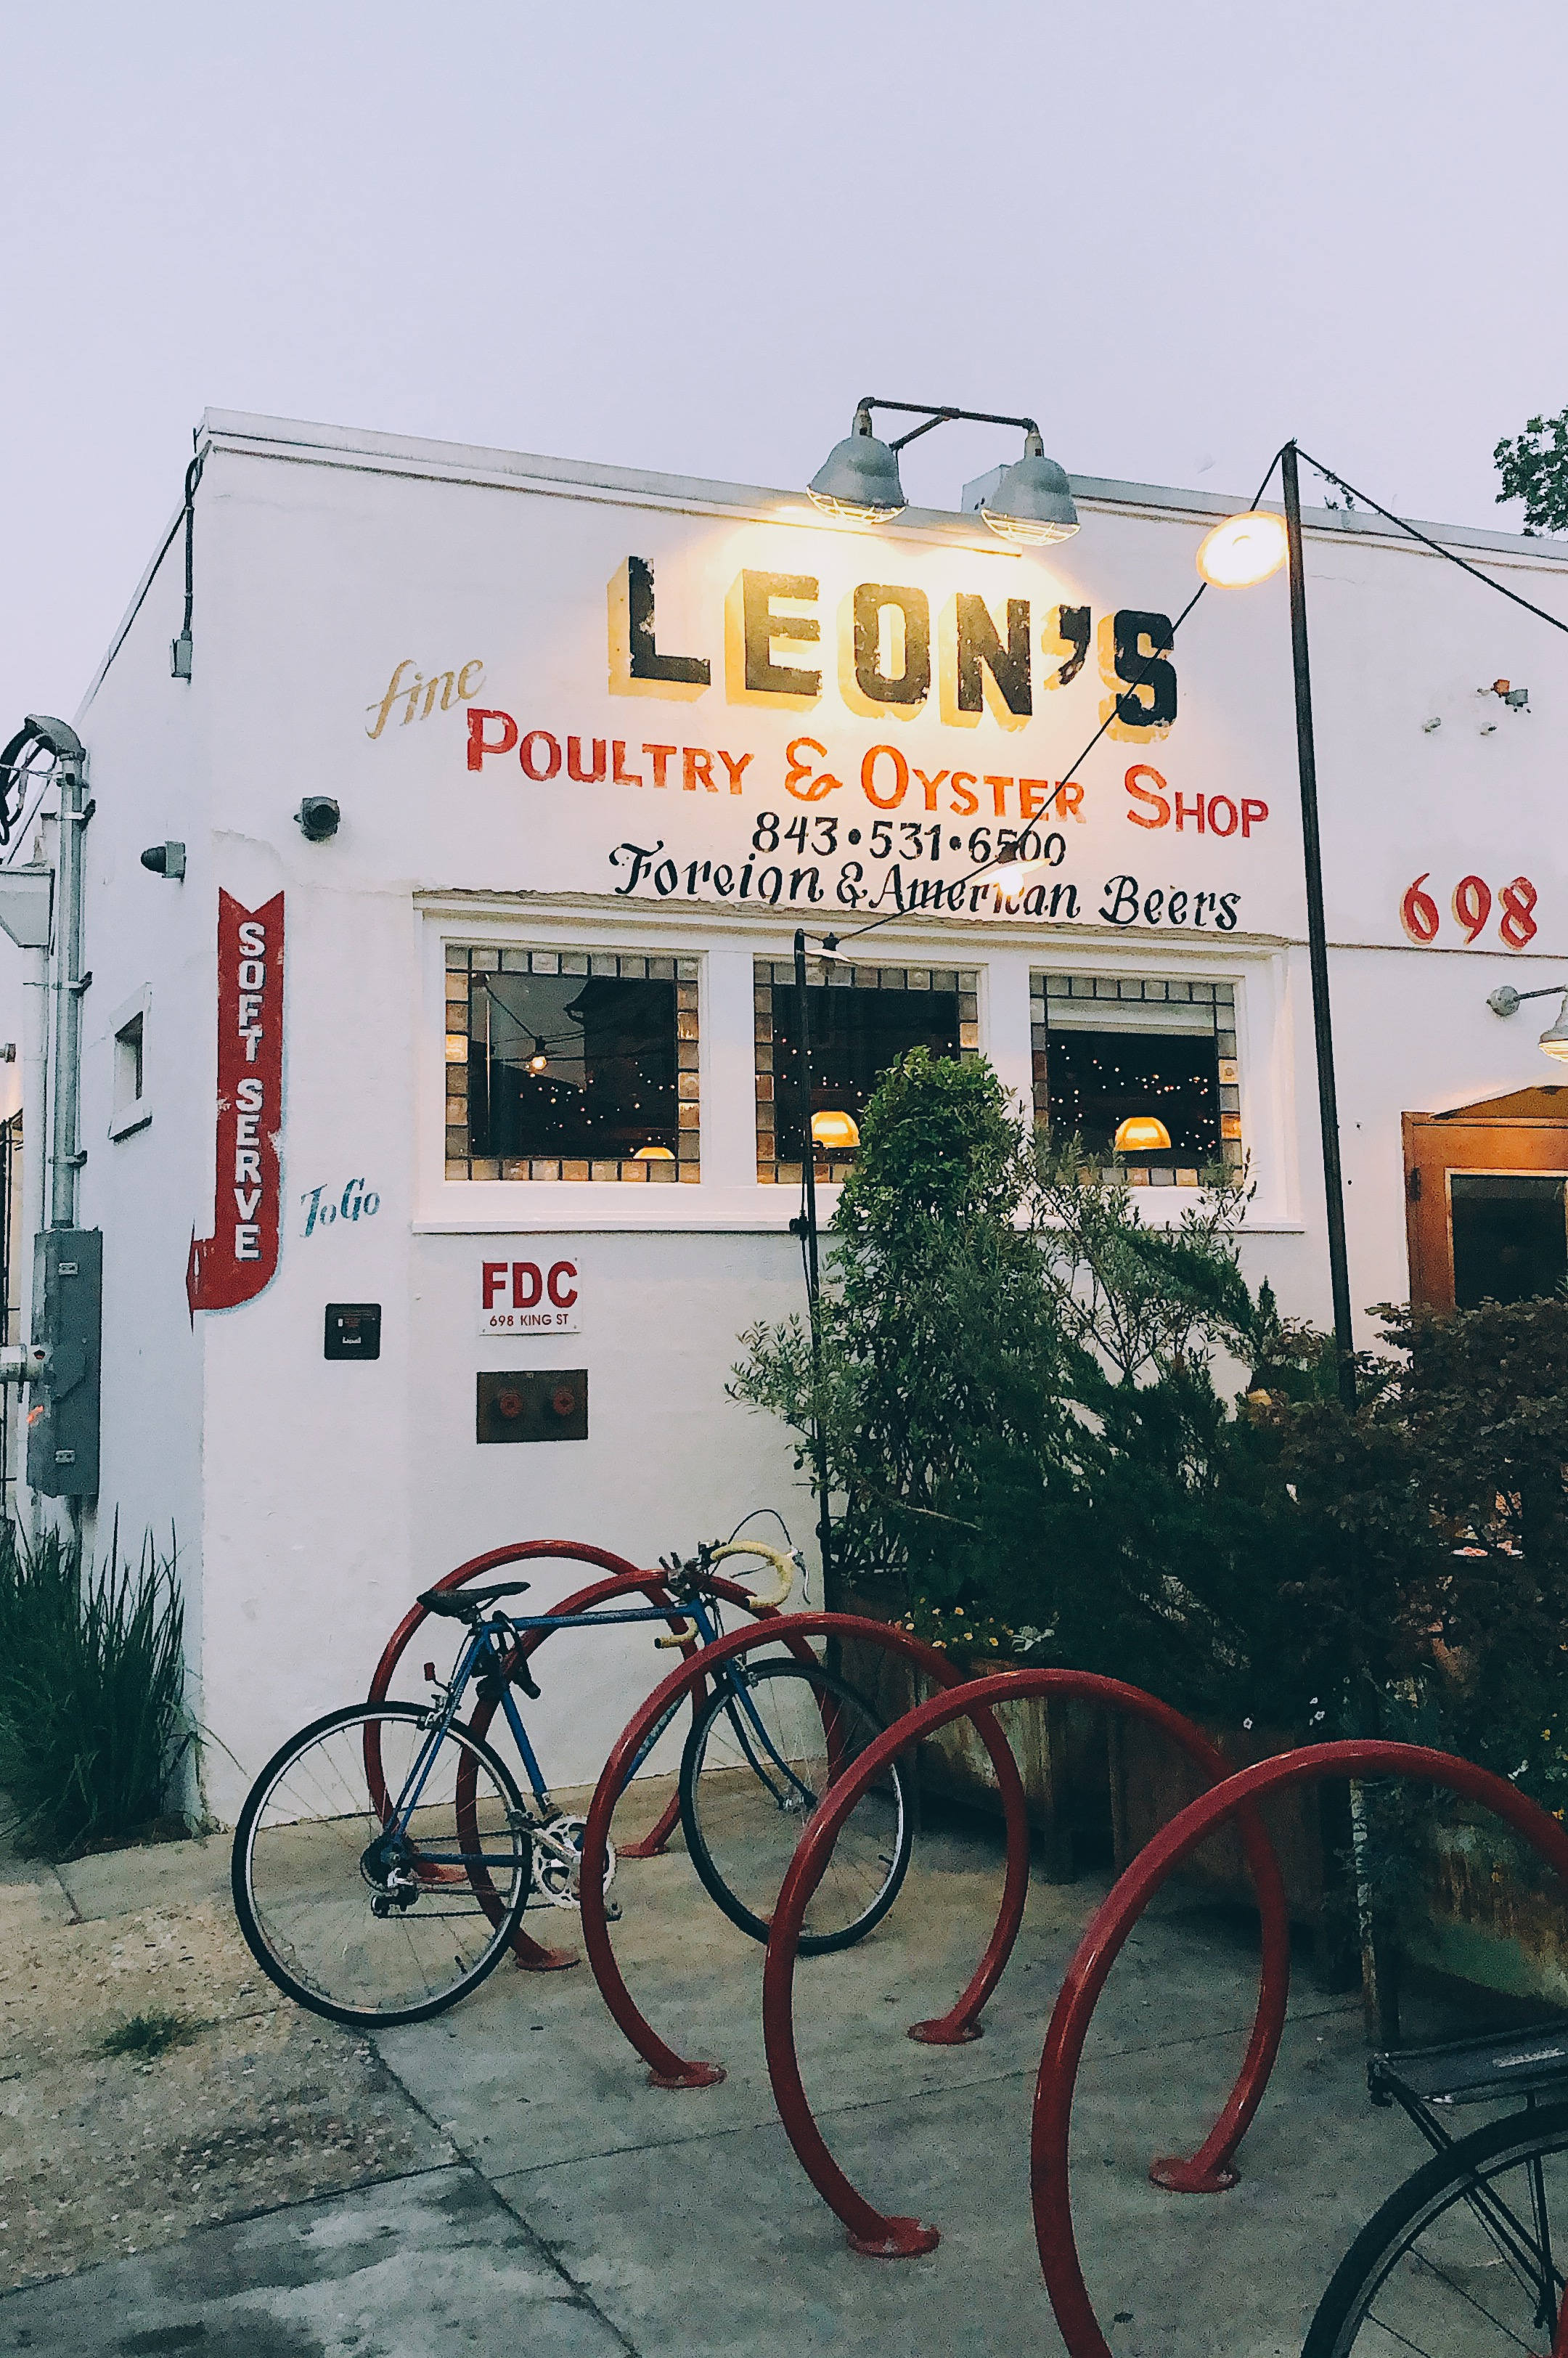 leon's oyster shop charleston south carolina